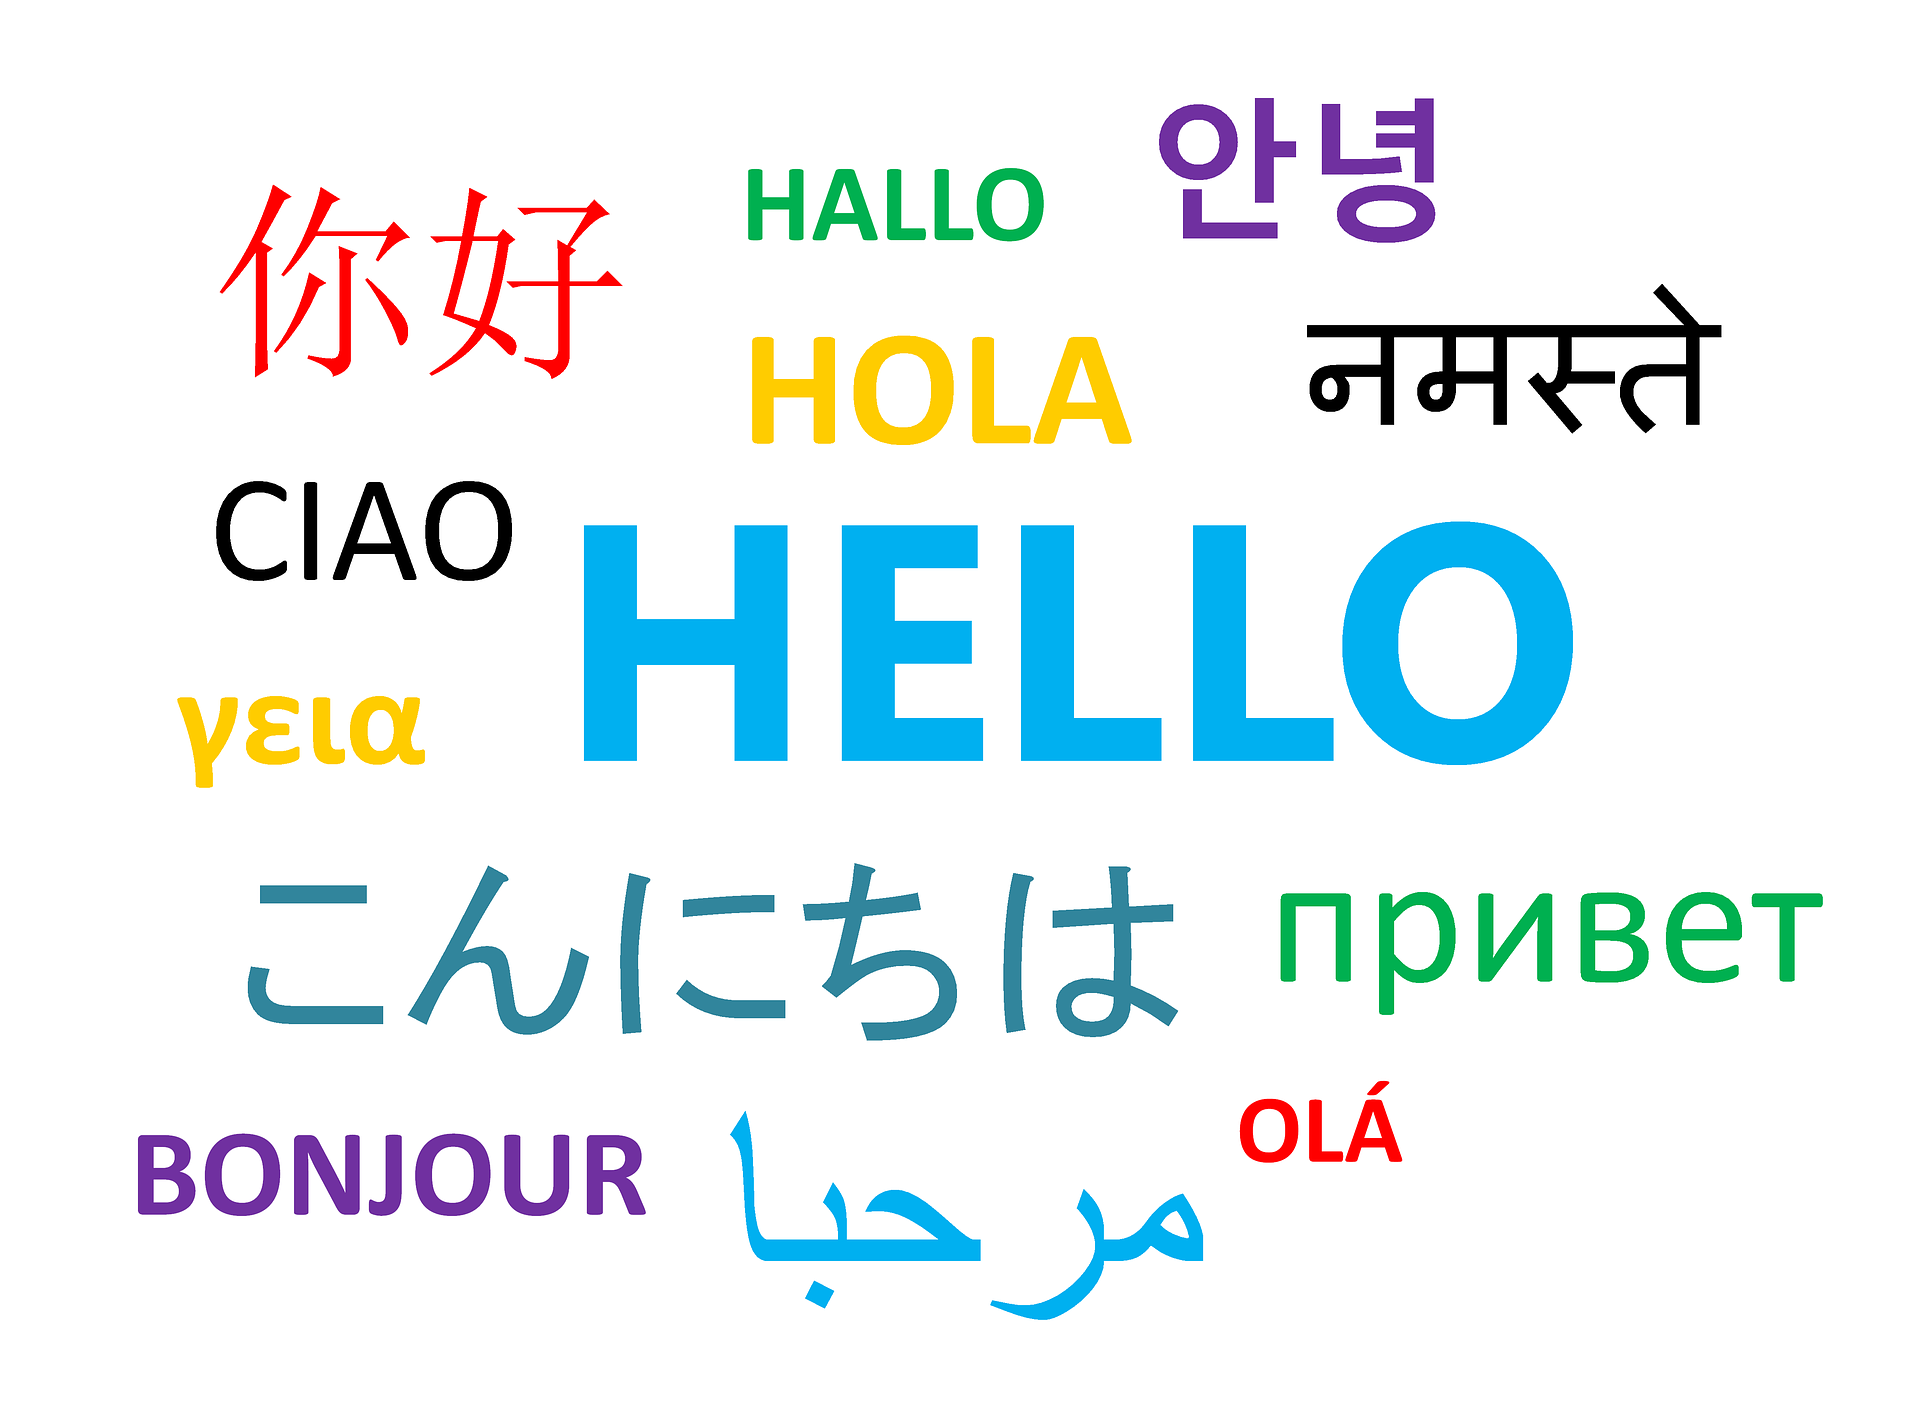 Hello, in many languages